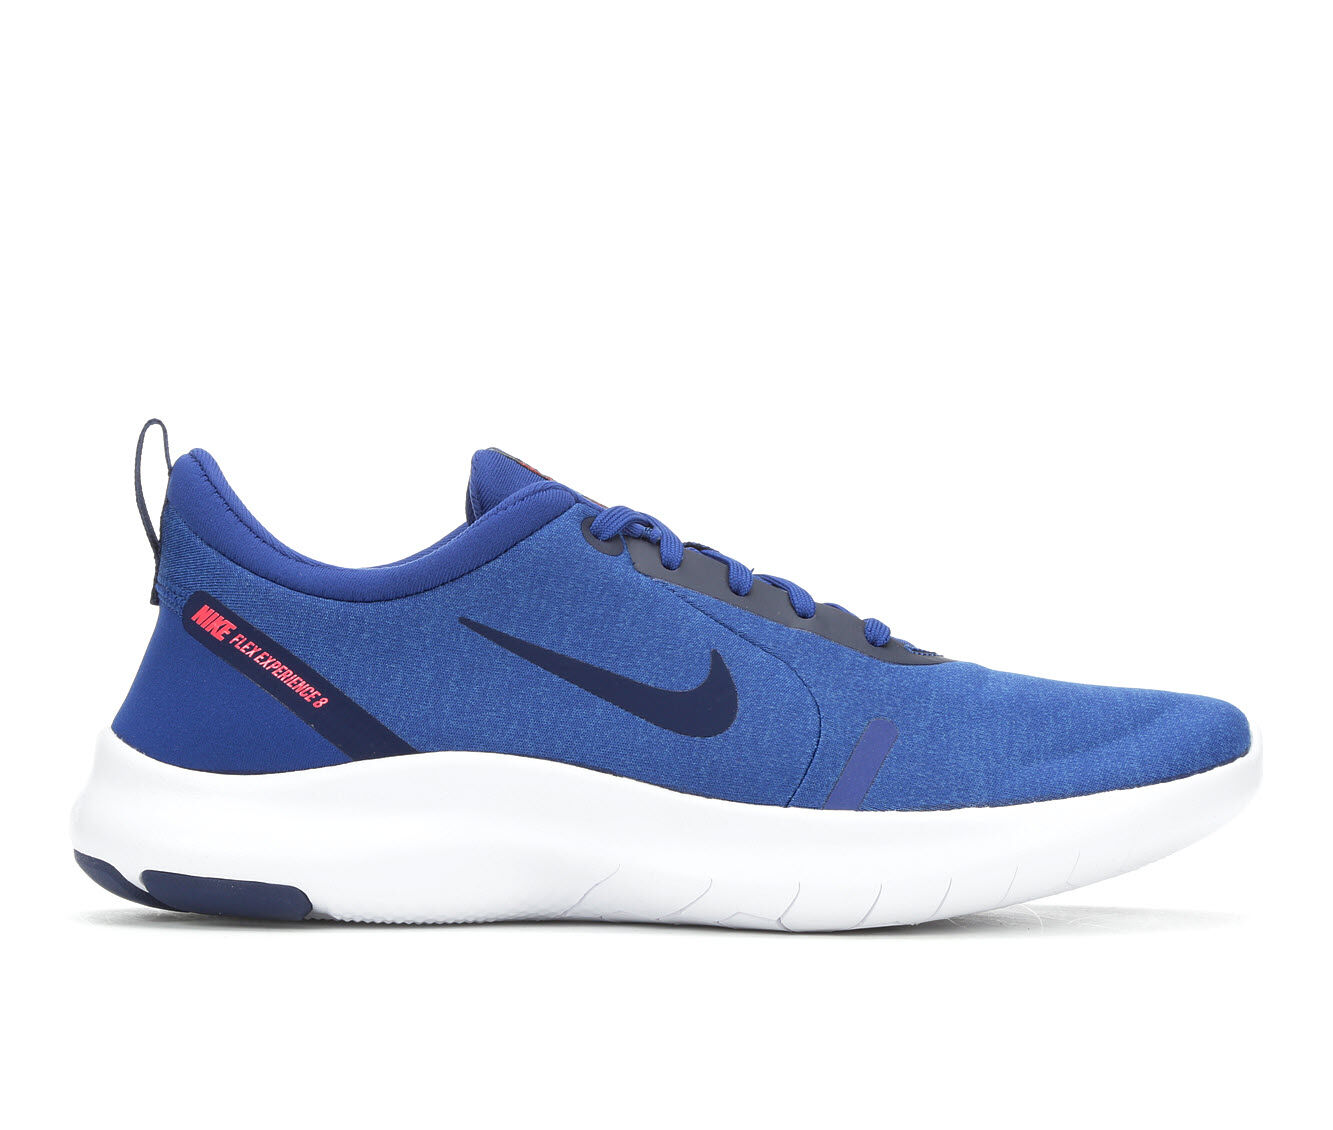 Men's Nike Flex Experience Rn 8 Running Shoes Blu/Wht/Red 400